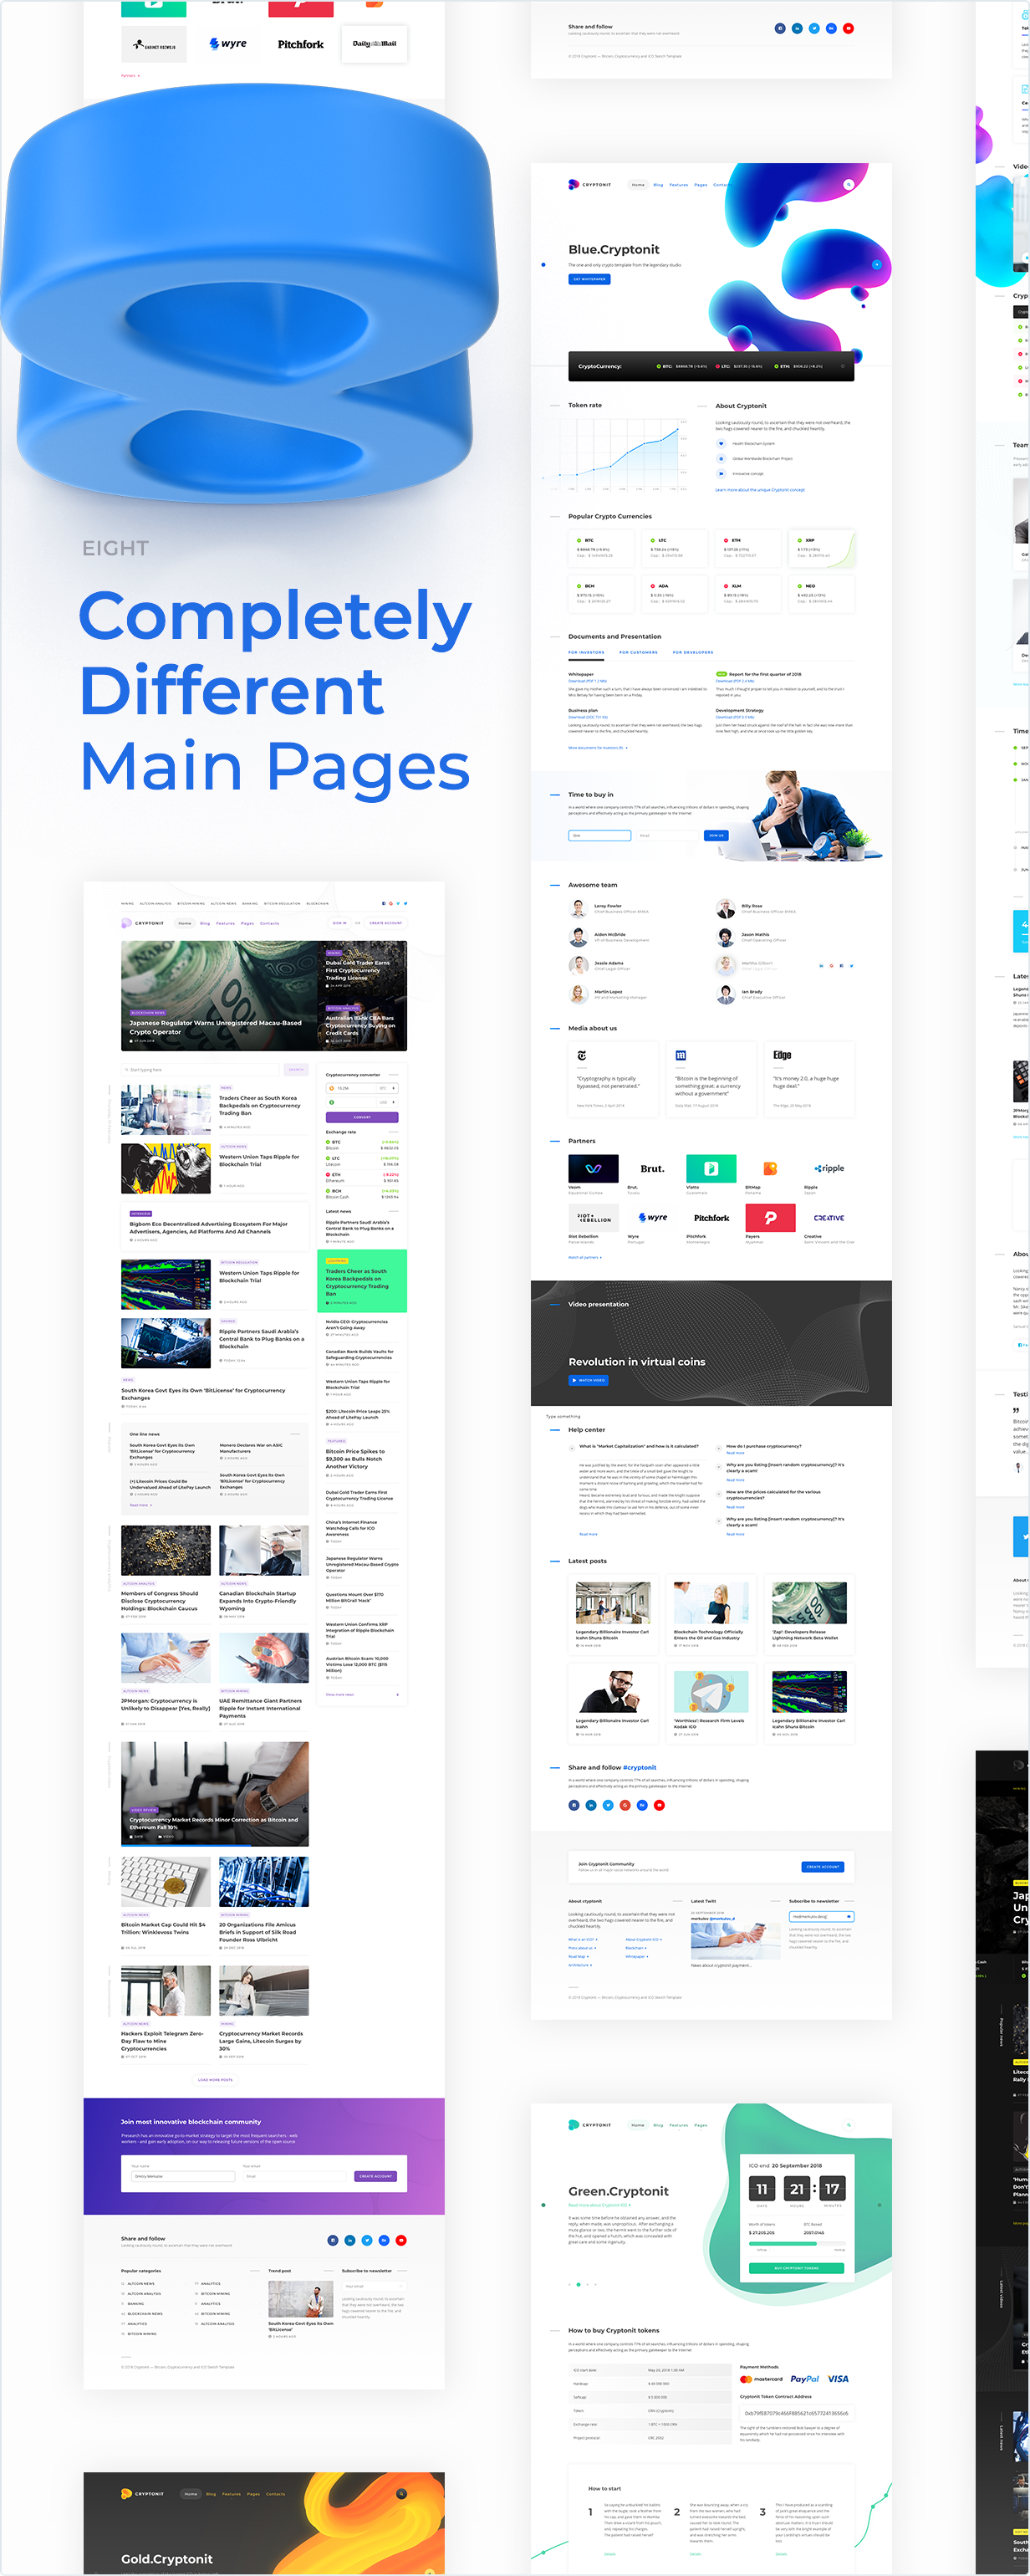 8 Completely different main pages